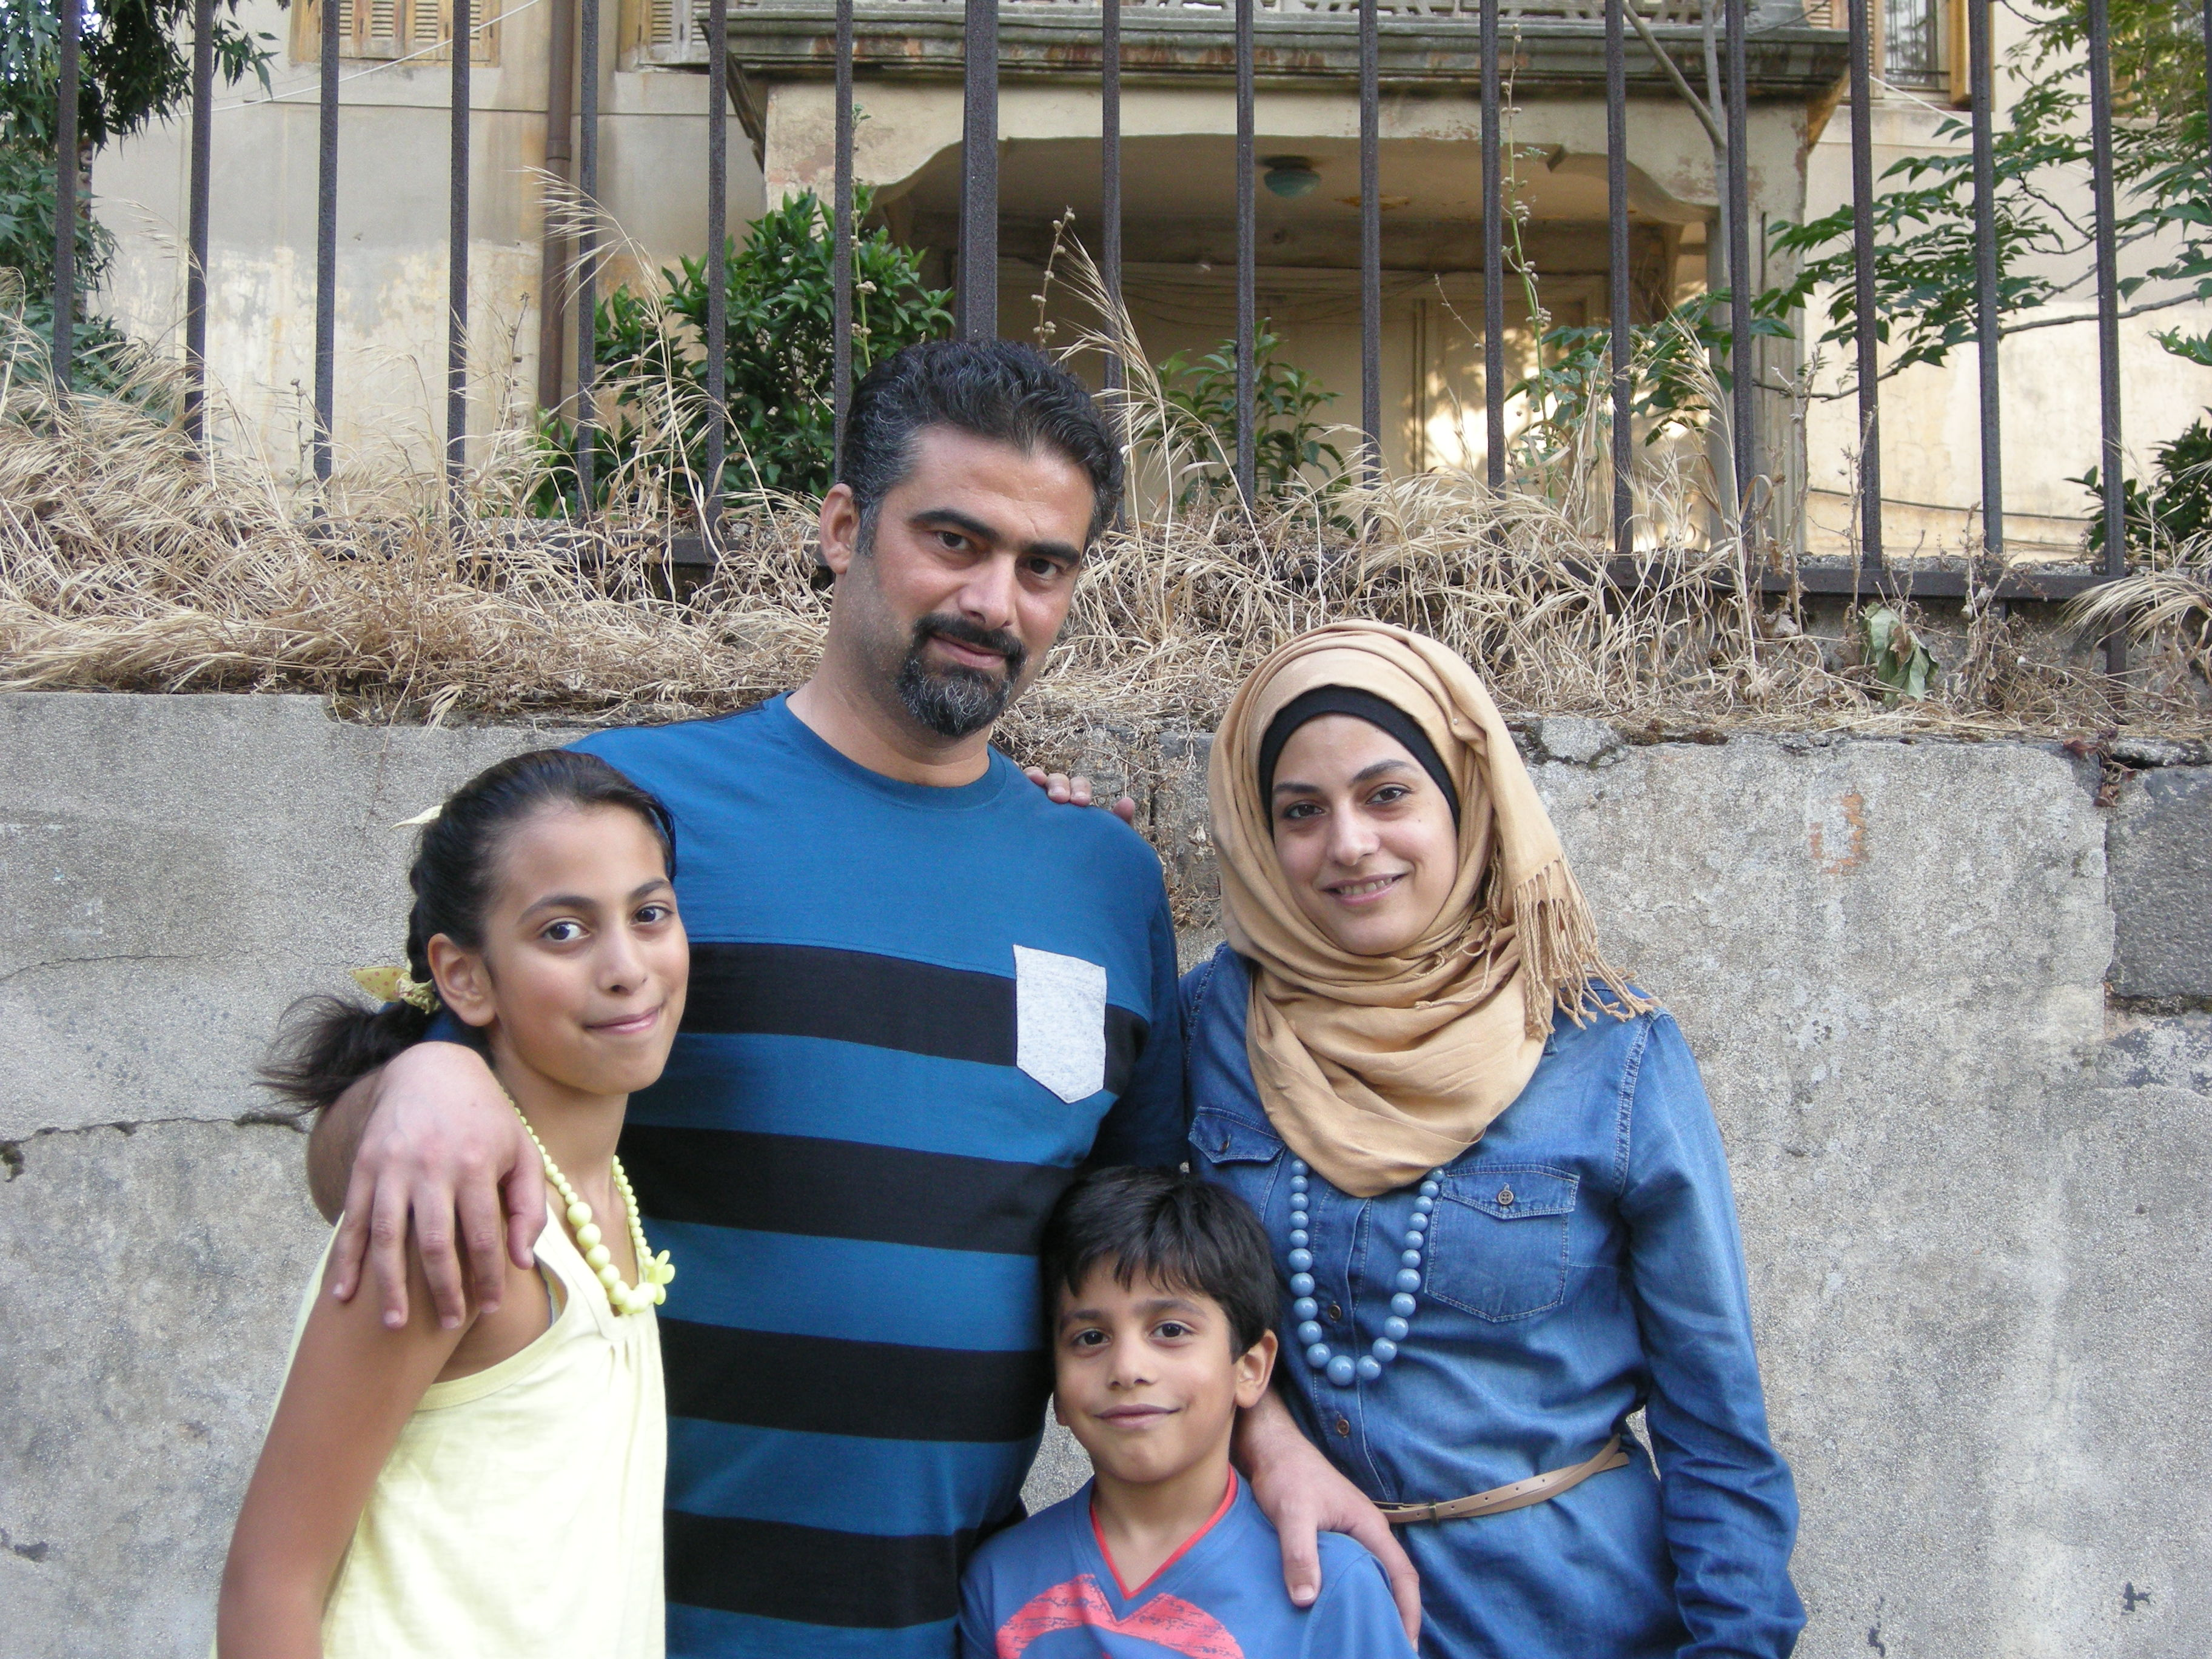 Marwa Al-Sabouni photographed earlier this year in Homs with her husband, Ghassan, their daugther Naya and son Ayk.